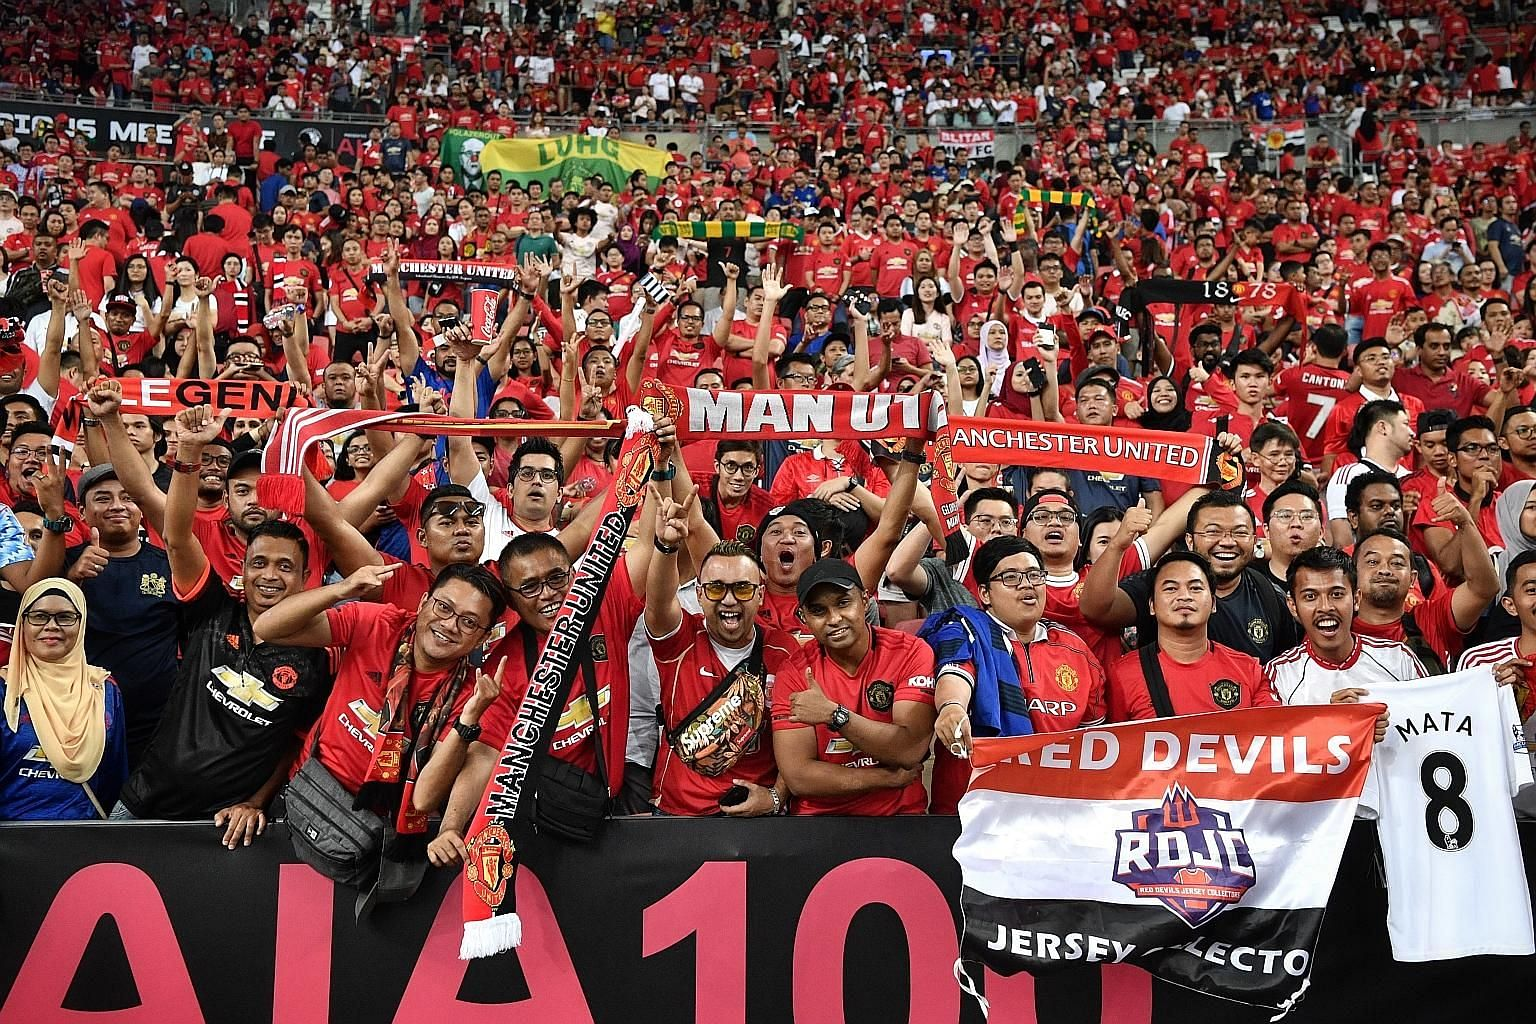 Manchester United fans packing the National Stadium last July to witness their team beat Inter Milan 1-0 in the International Champions Cup. They were part of a record 52,897 crowd. ST FILE PHOTO